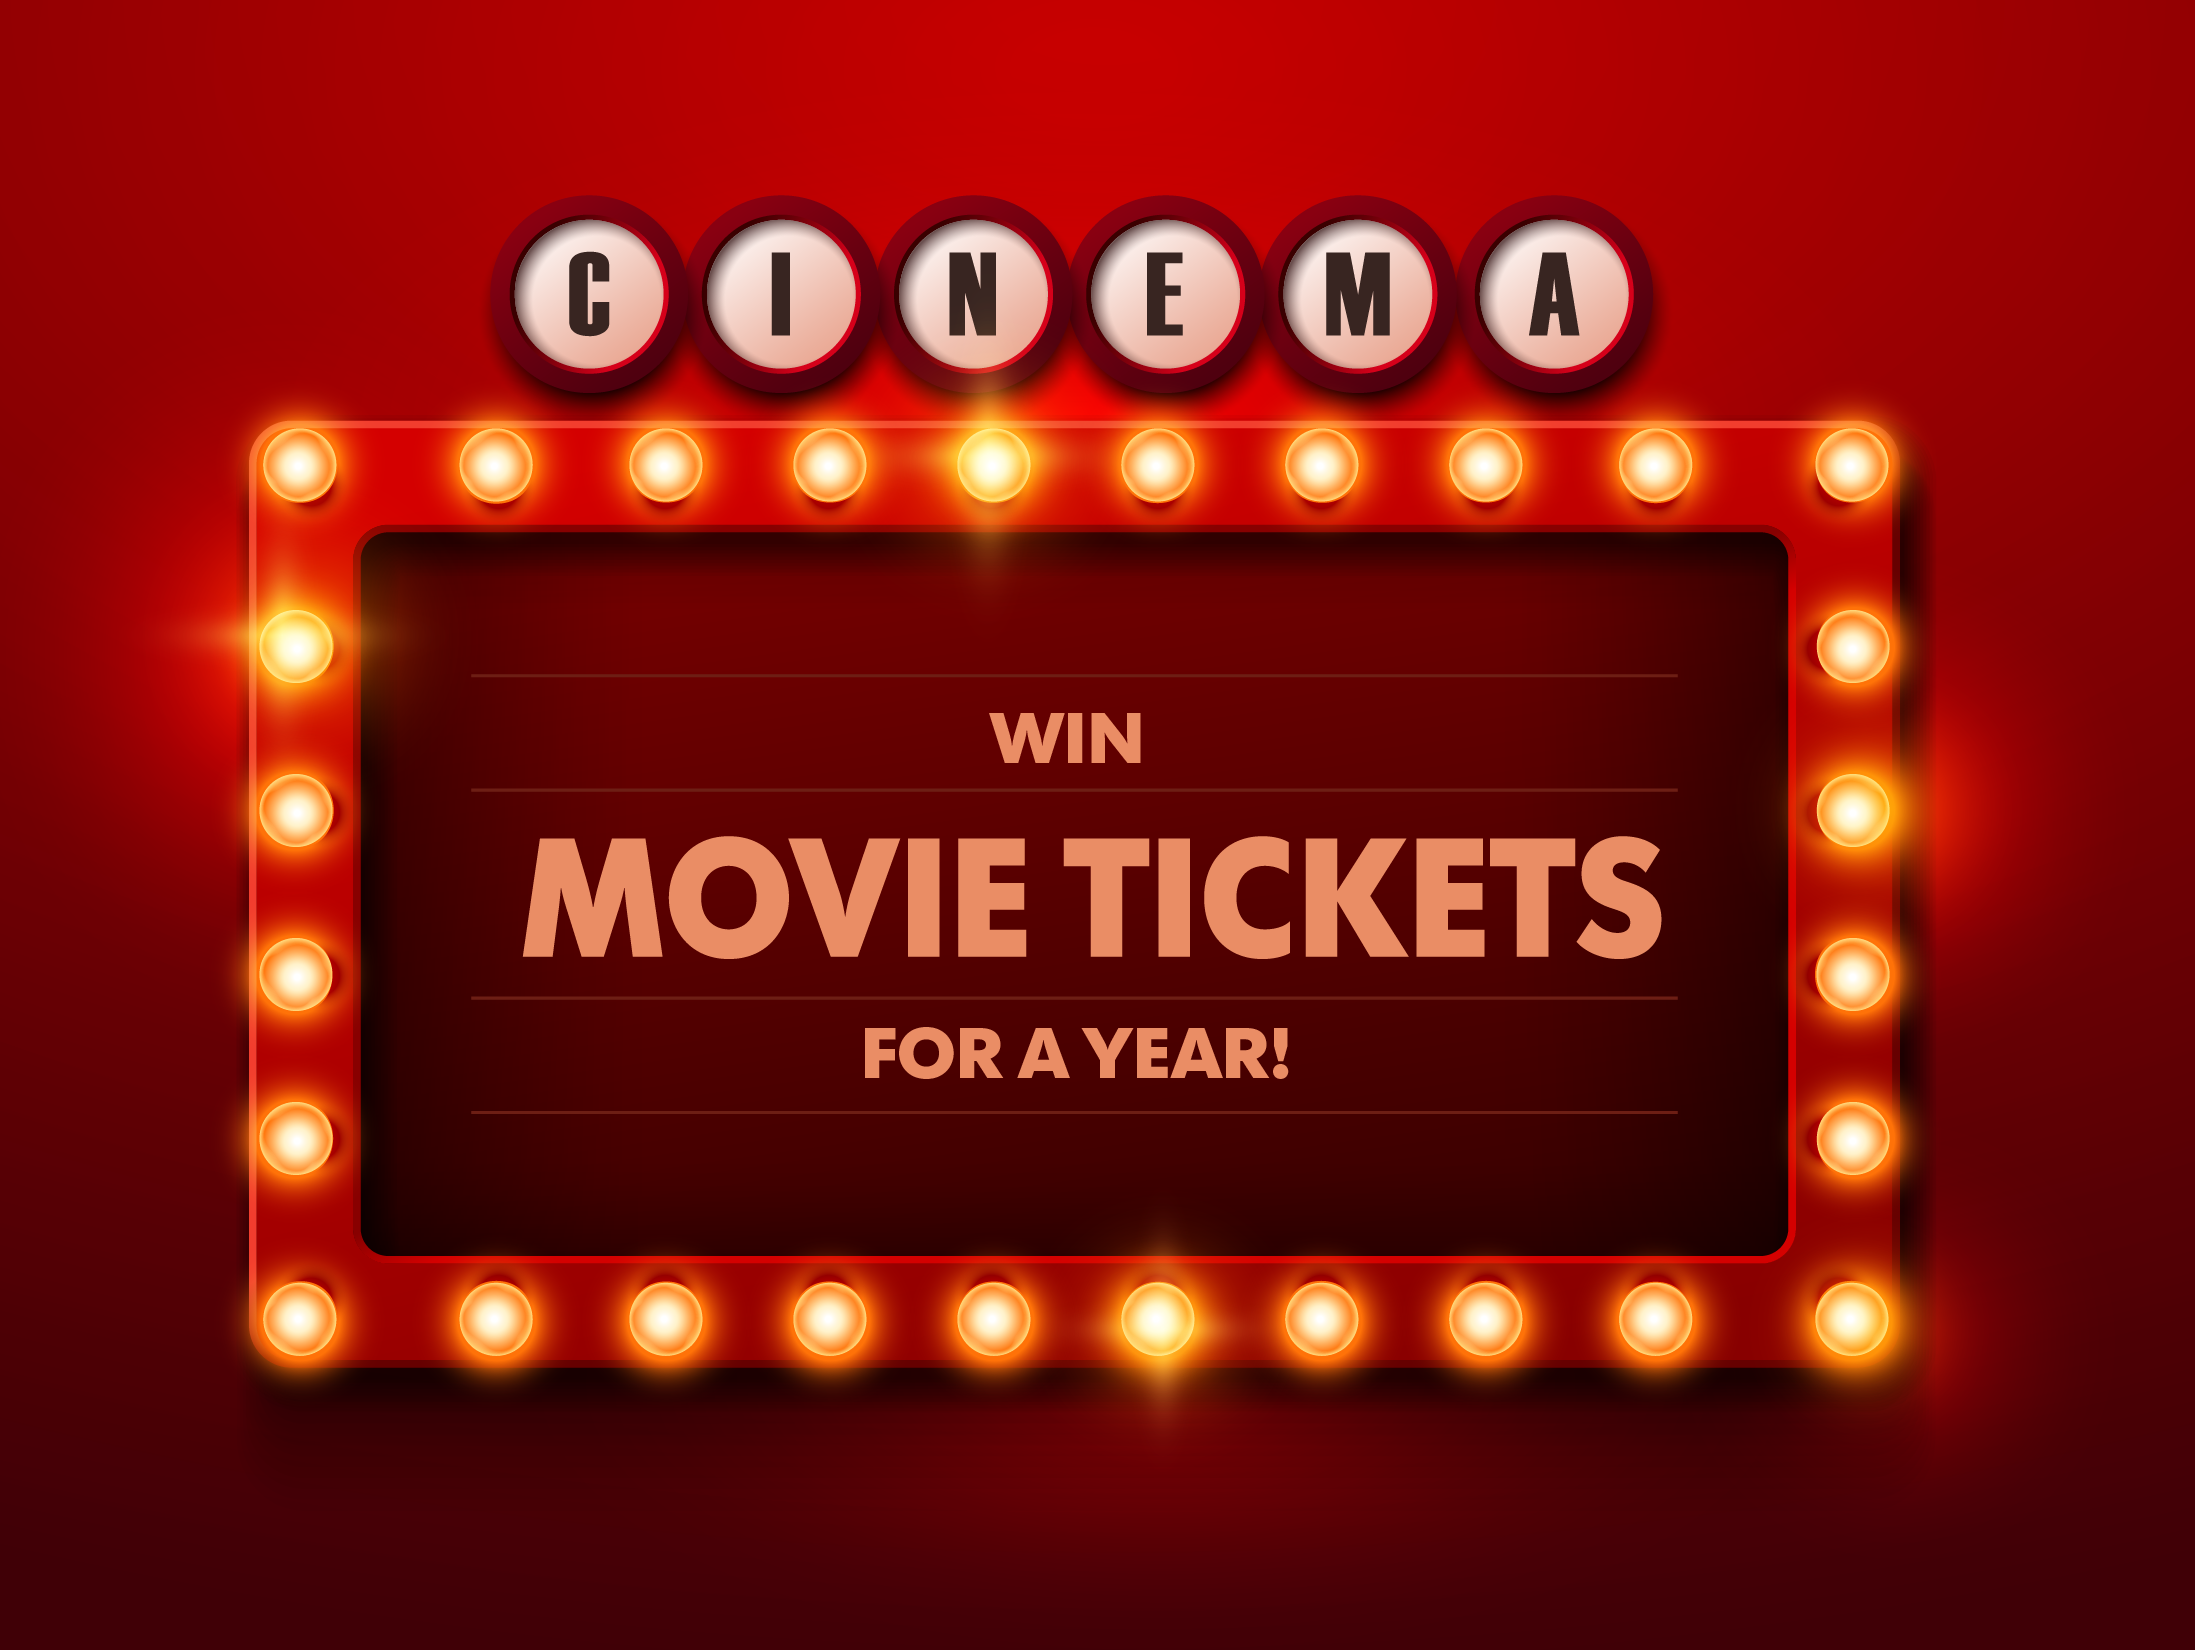 Enjoy a night at the movies every month! Enter to win 1/30-2/25